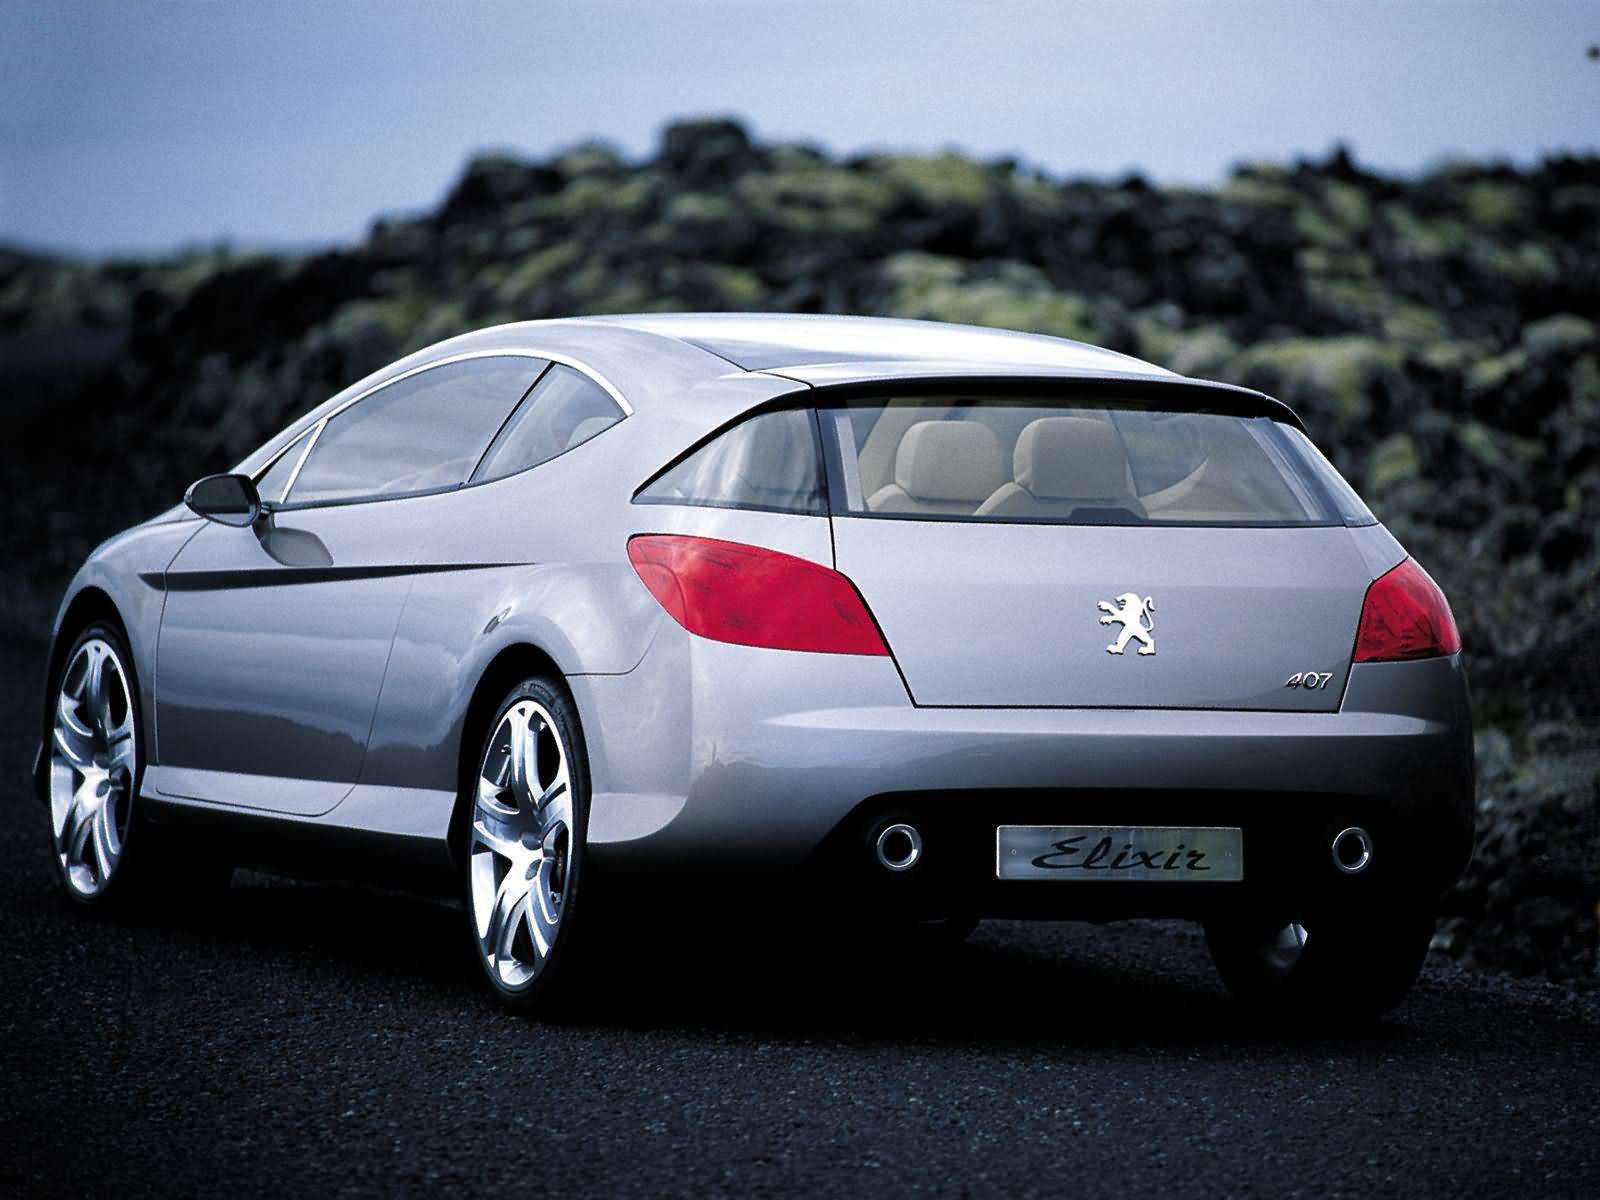 peugeot 407 elixir concept 2003 car accident lawyers info. Black Bedroom Furniture Sets. Home Design Ideas